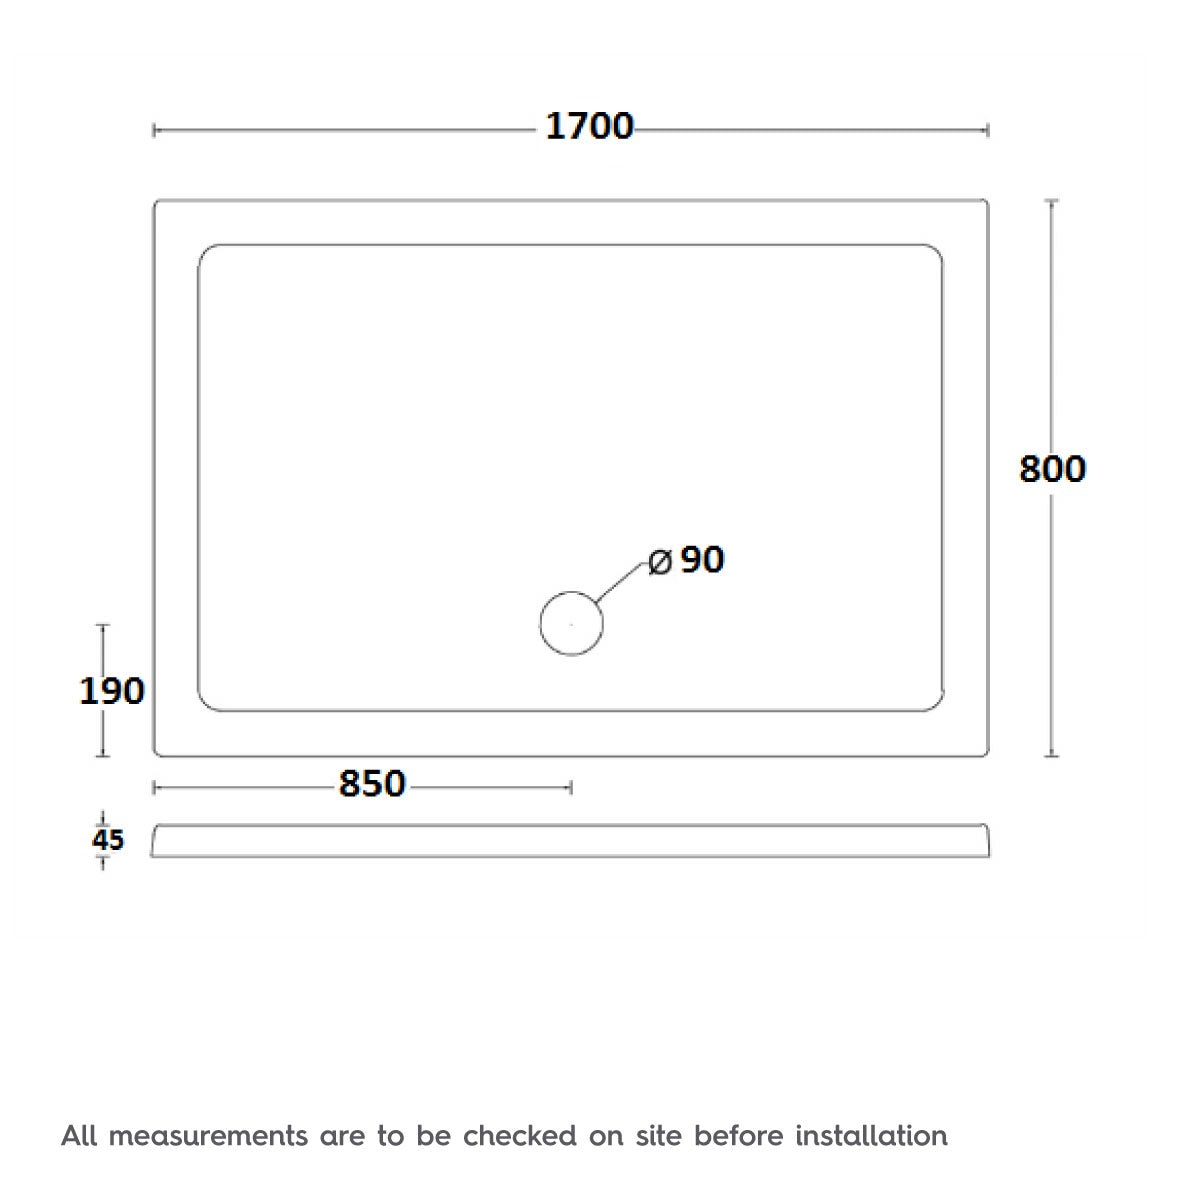 Dimensions for 1700 x 800